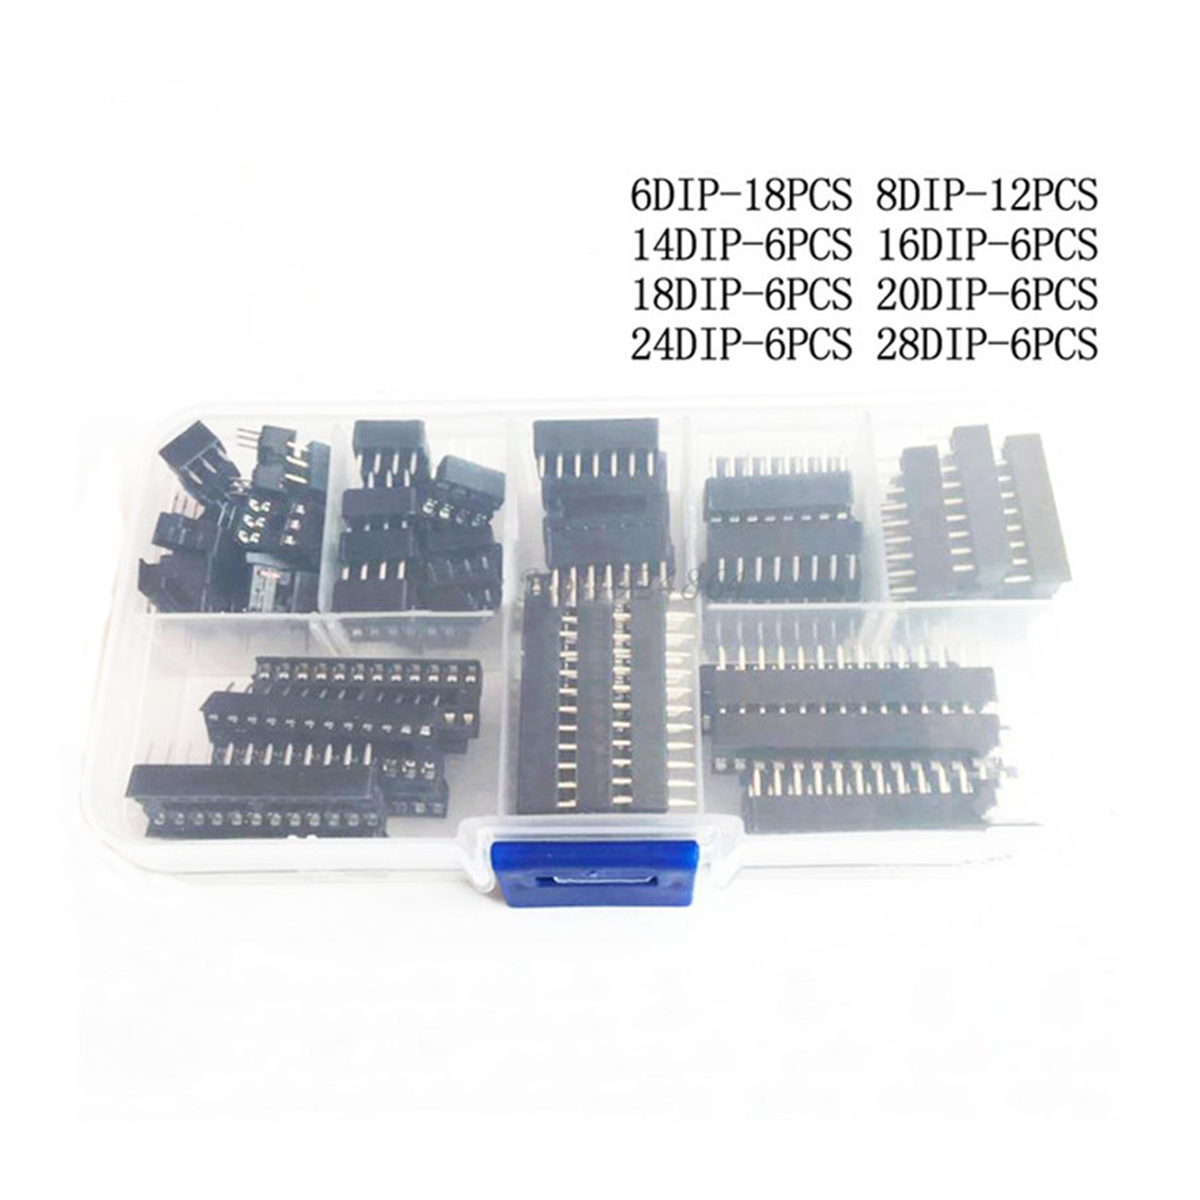 66PCS/Lot <font><b>DIP</b></font> IC <font><b>Sockets</b></font> Adaptor Solder Type 6/8/14/16/18/20/24/<font><b>28</b></font> pins <font><b>DIP</b></font> IC <font><b>Socket</b></font> set electronic diy assortment kit MCU seat image